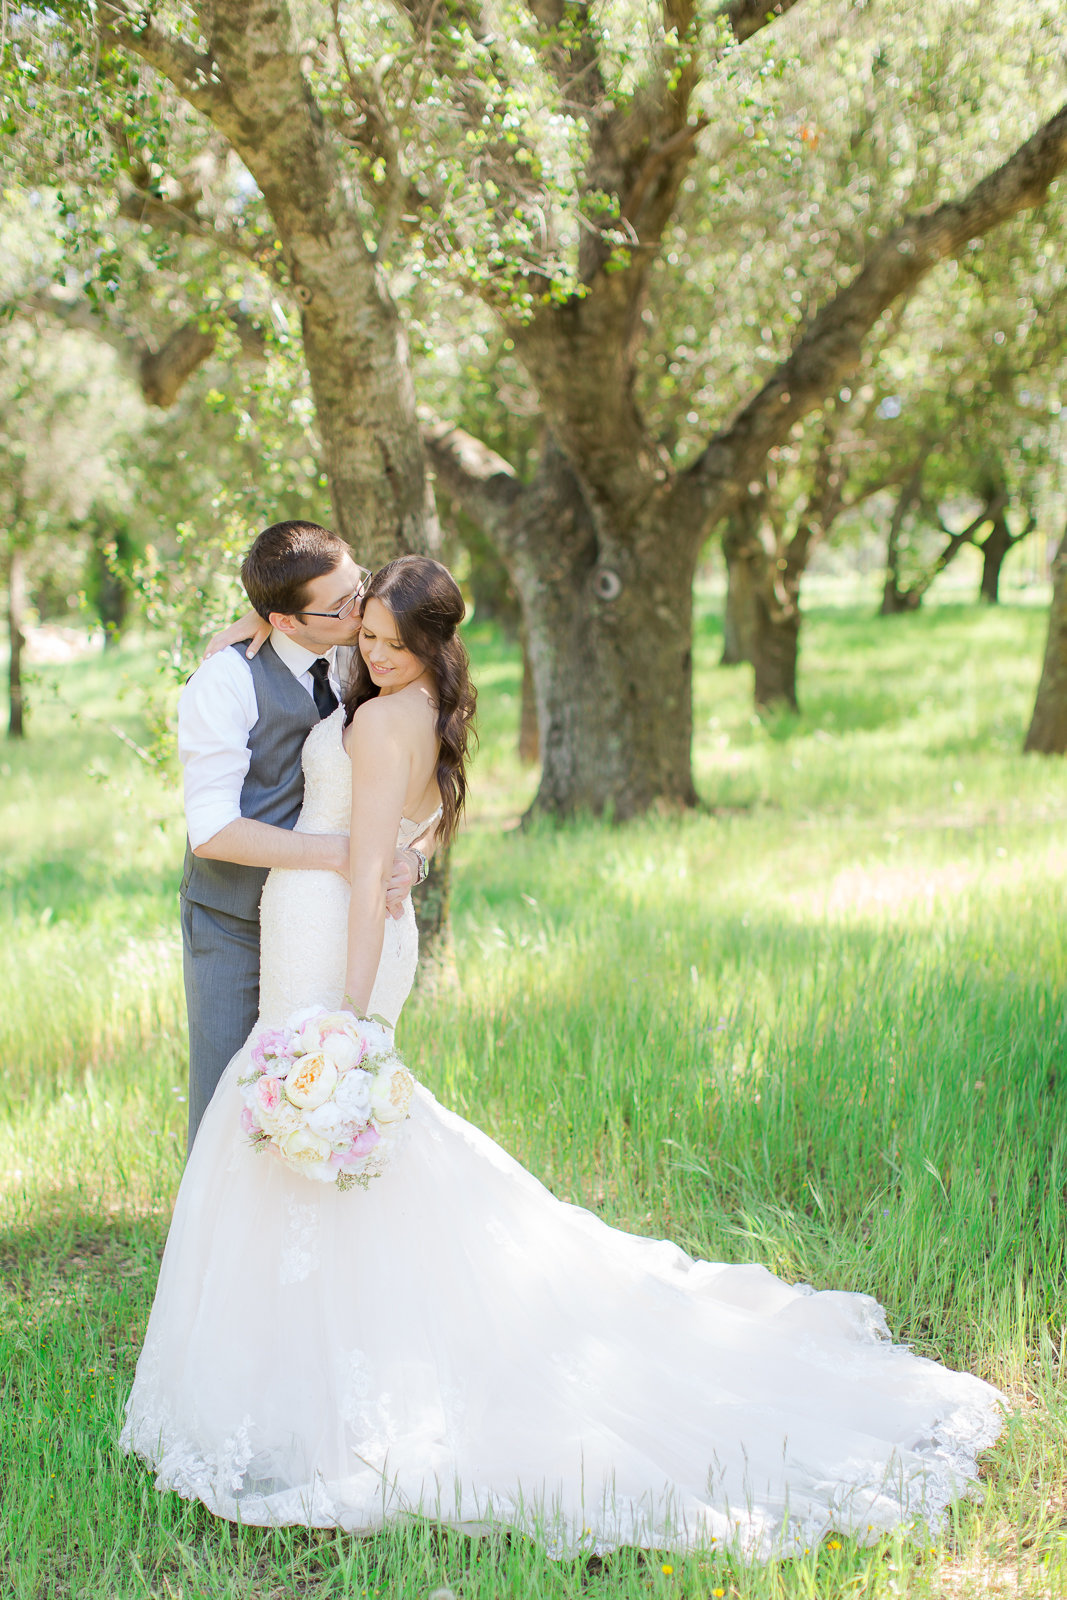 Bride and Groom Wedding Photo Ideas Theresa Bridget Photography Photo-4925